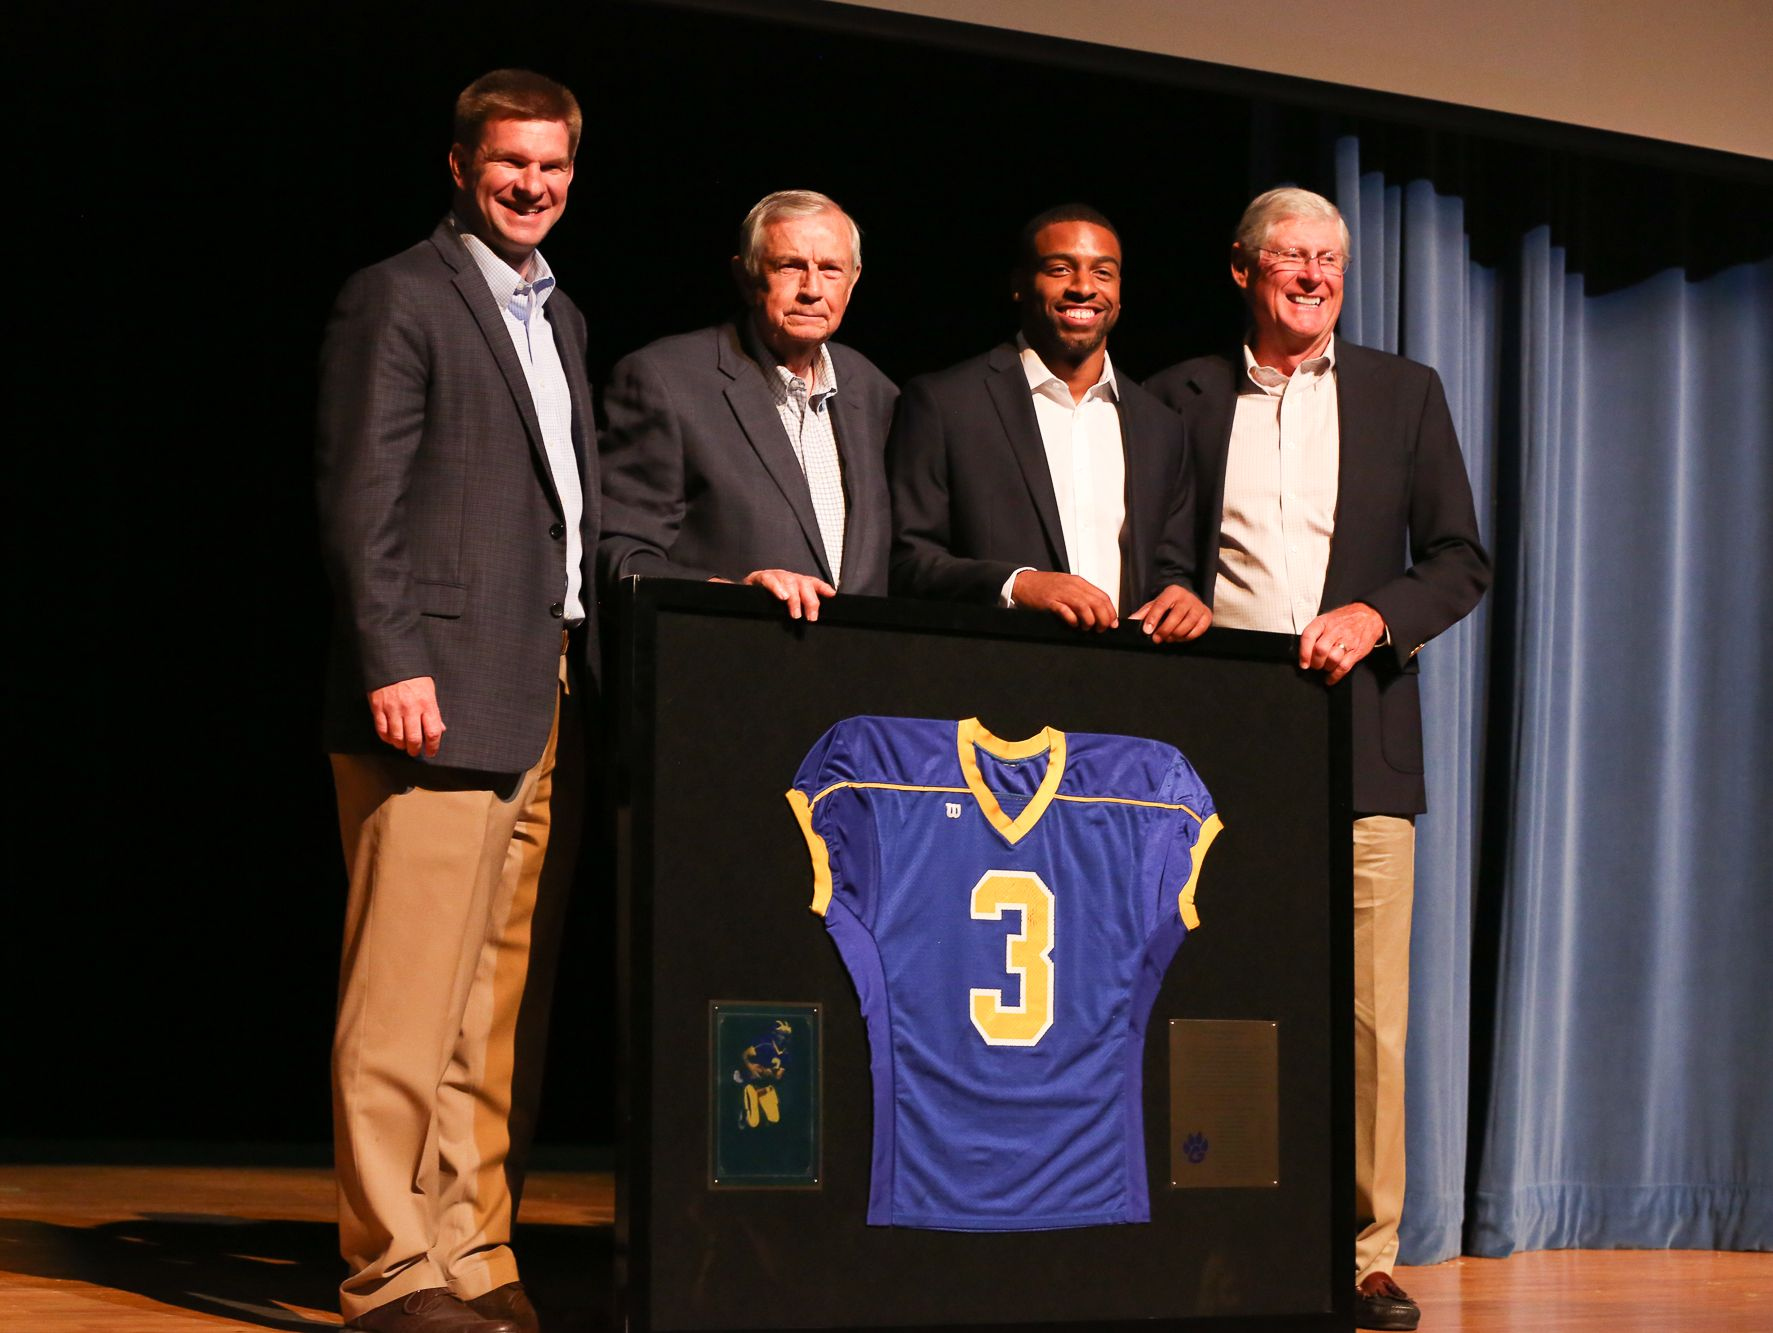 """From left, Goodpasture Principal Lindsey Judd, Goodpasture athletics director Clint Parnell, honoree Keenan Reynolds and former Goodpasture coach David Martin pose with Reynolds' retired high school jersey at the """"Salute to Keenan Reynolds"""" on Friday night at Goodpasture."""